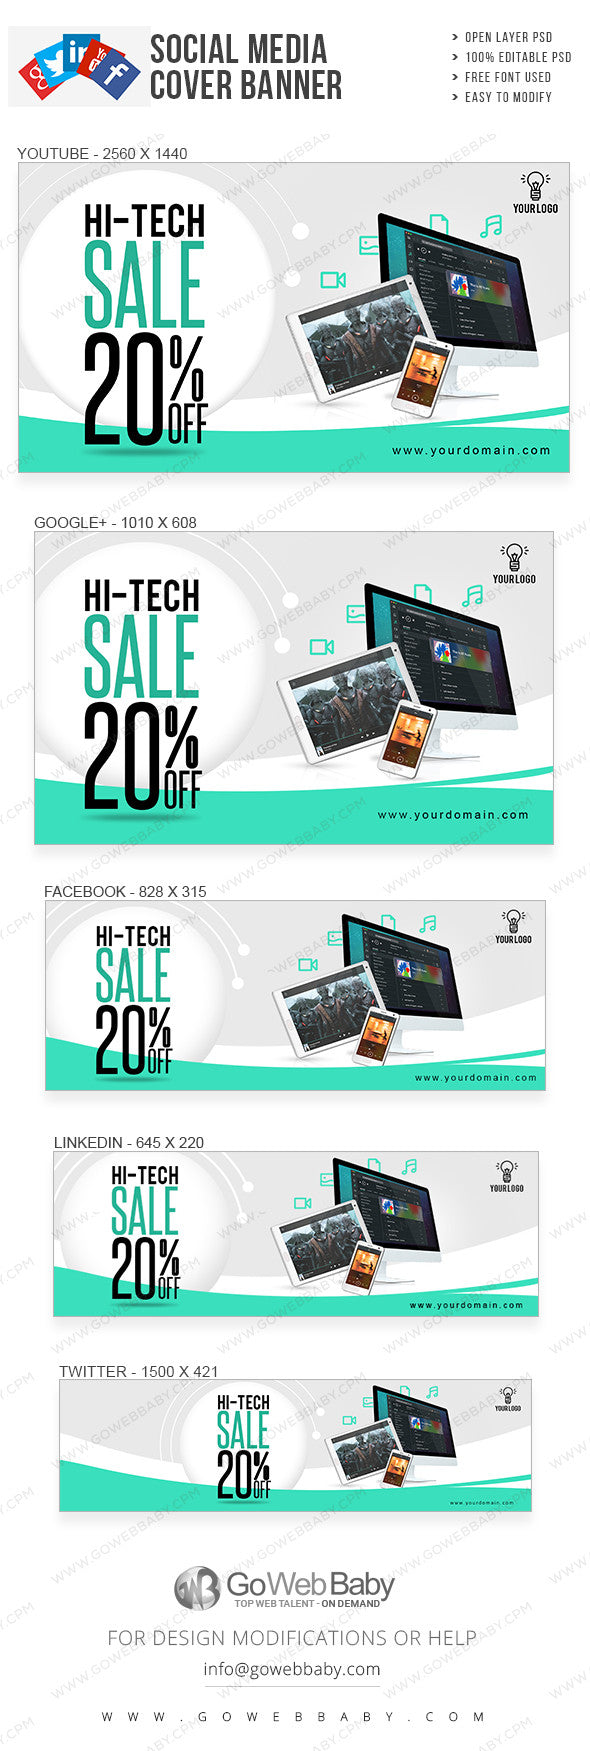 Hi-tech sale social media-covers Banner for website marketing - GoWebBaby.Com